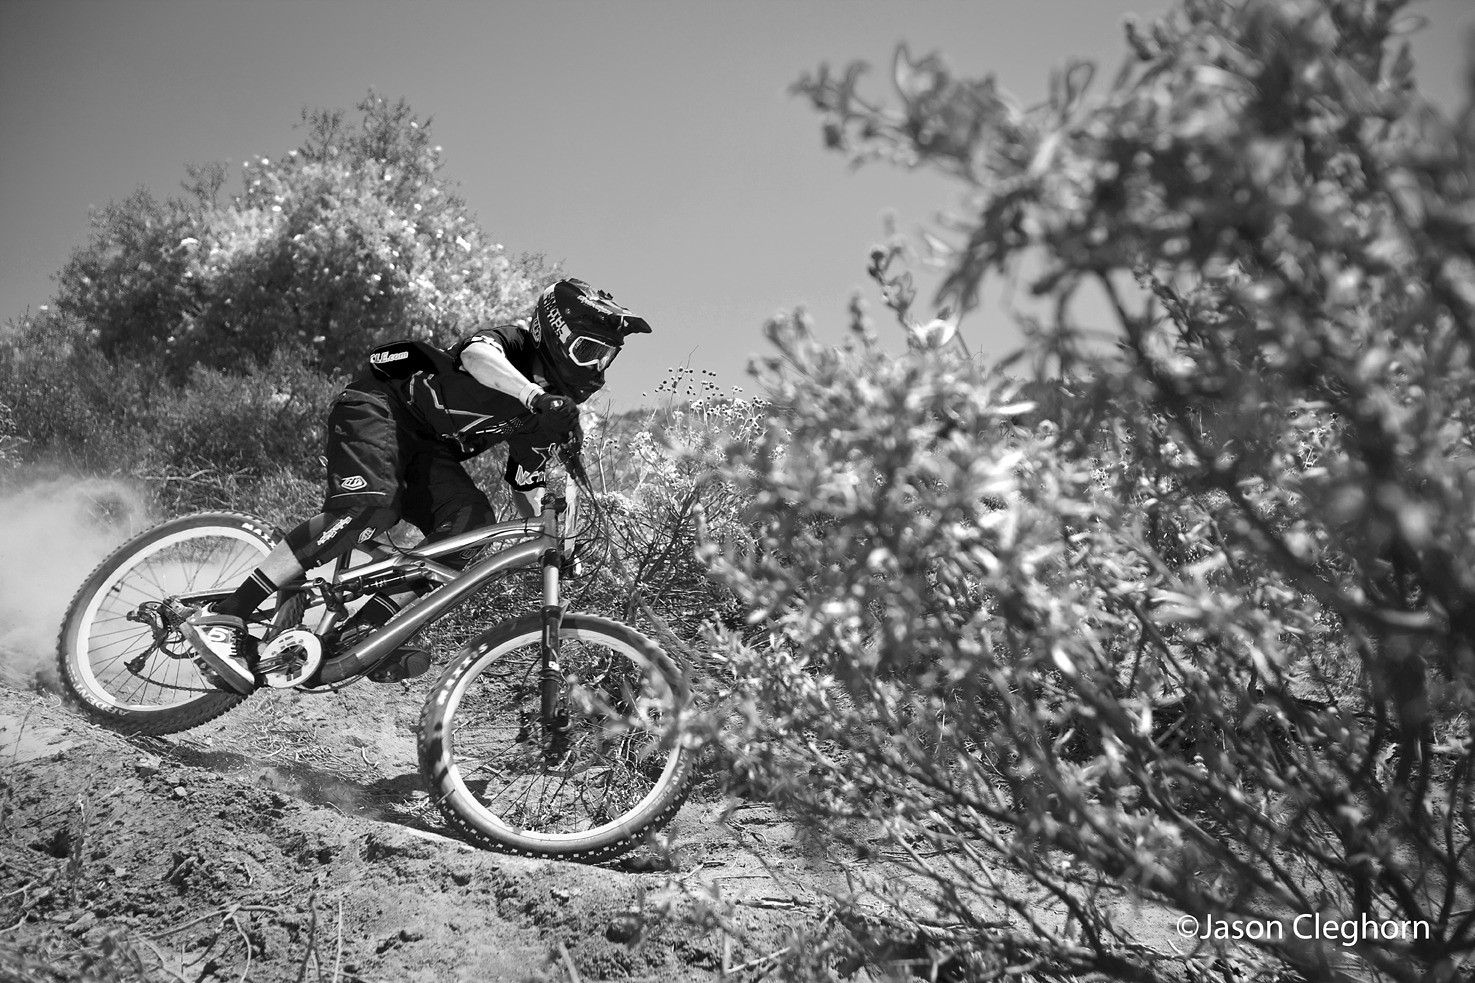 Bruce Klein - Cleghorn Photography - Mountain Biking Pictures - Vital MTB